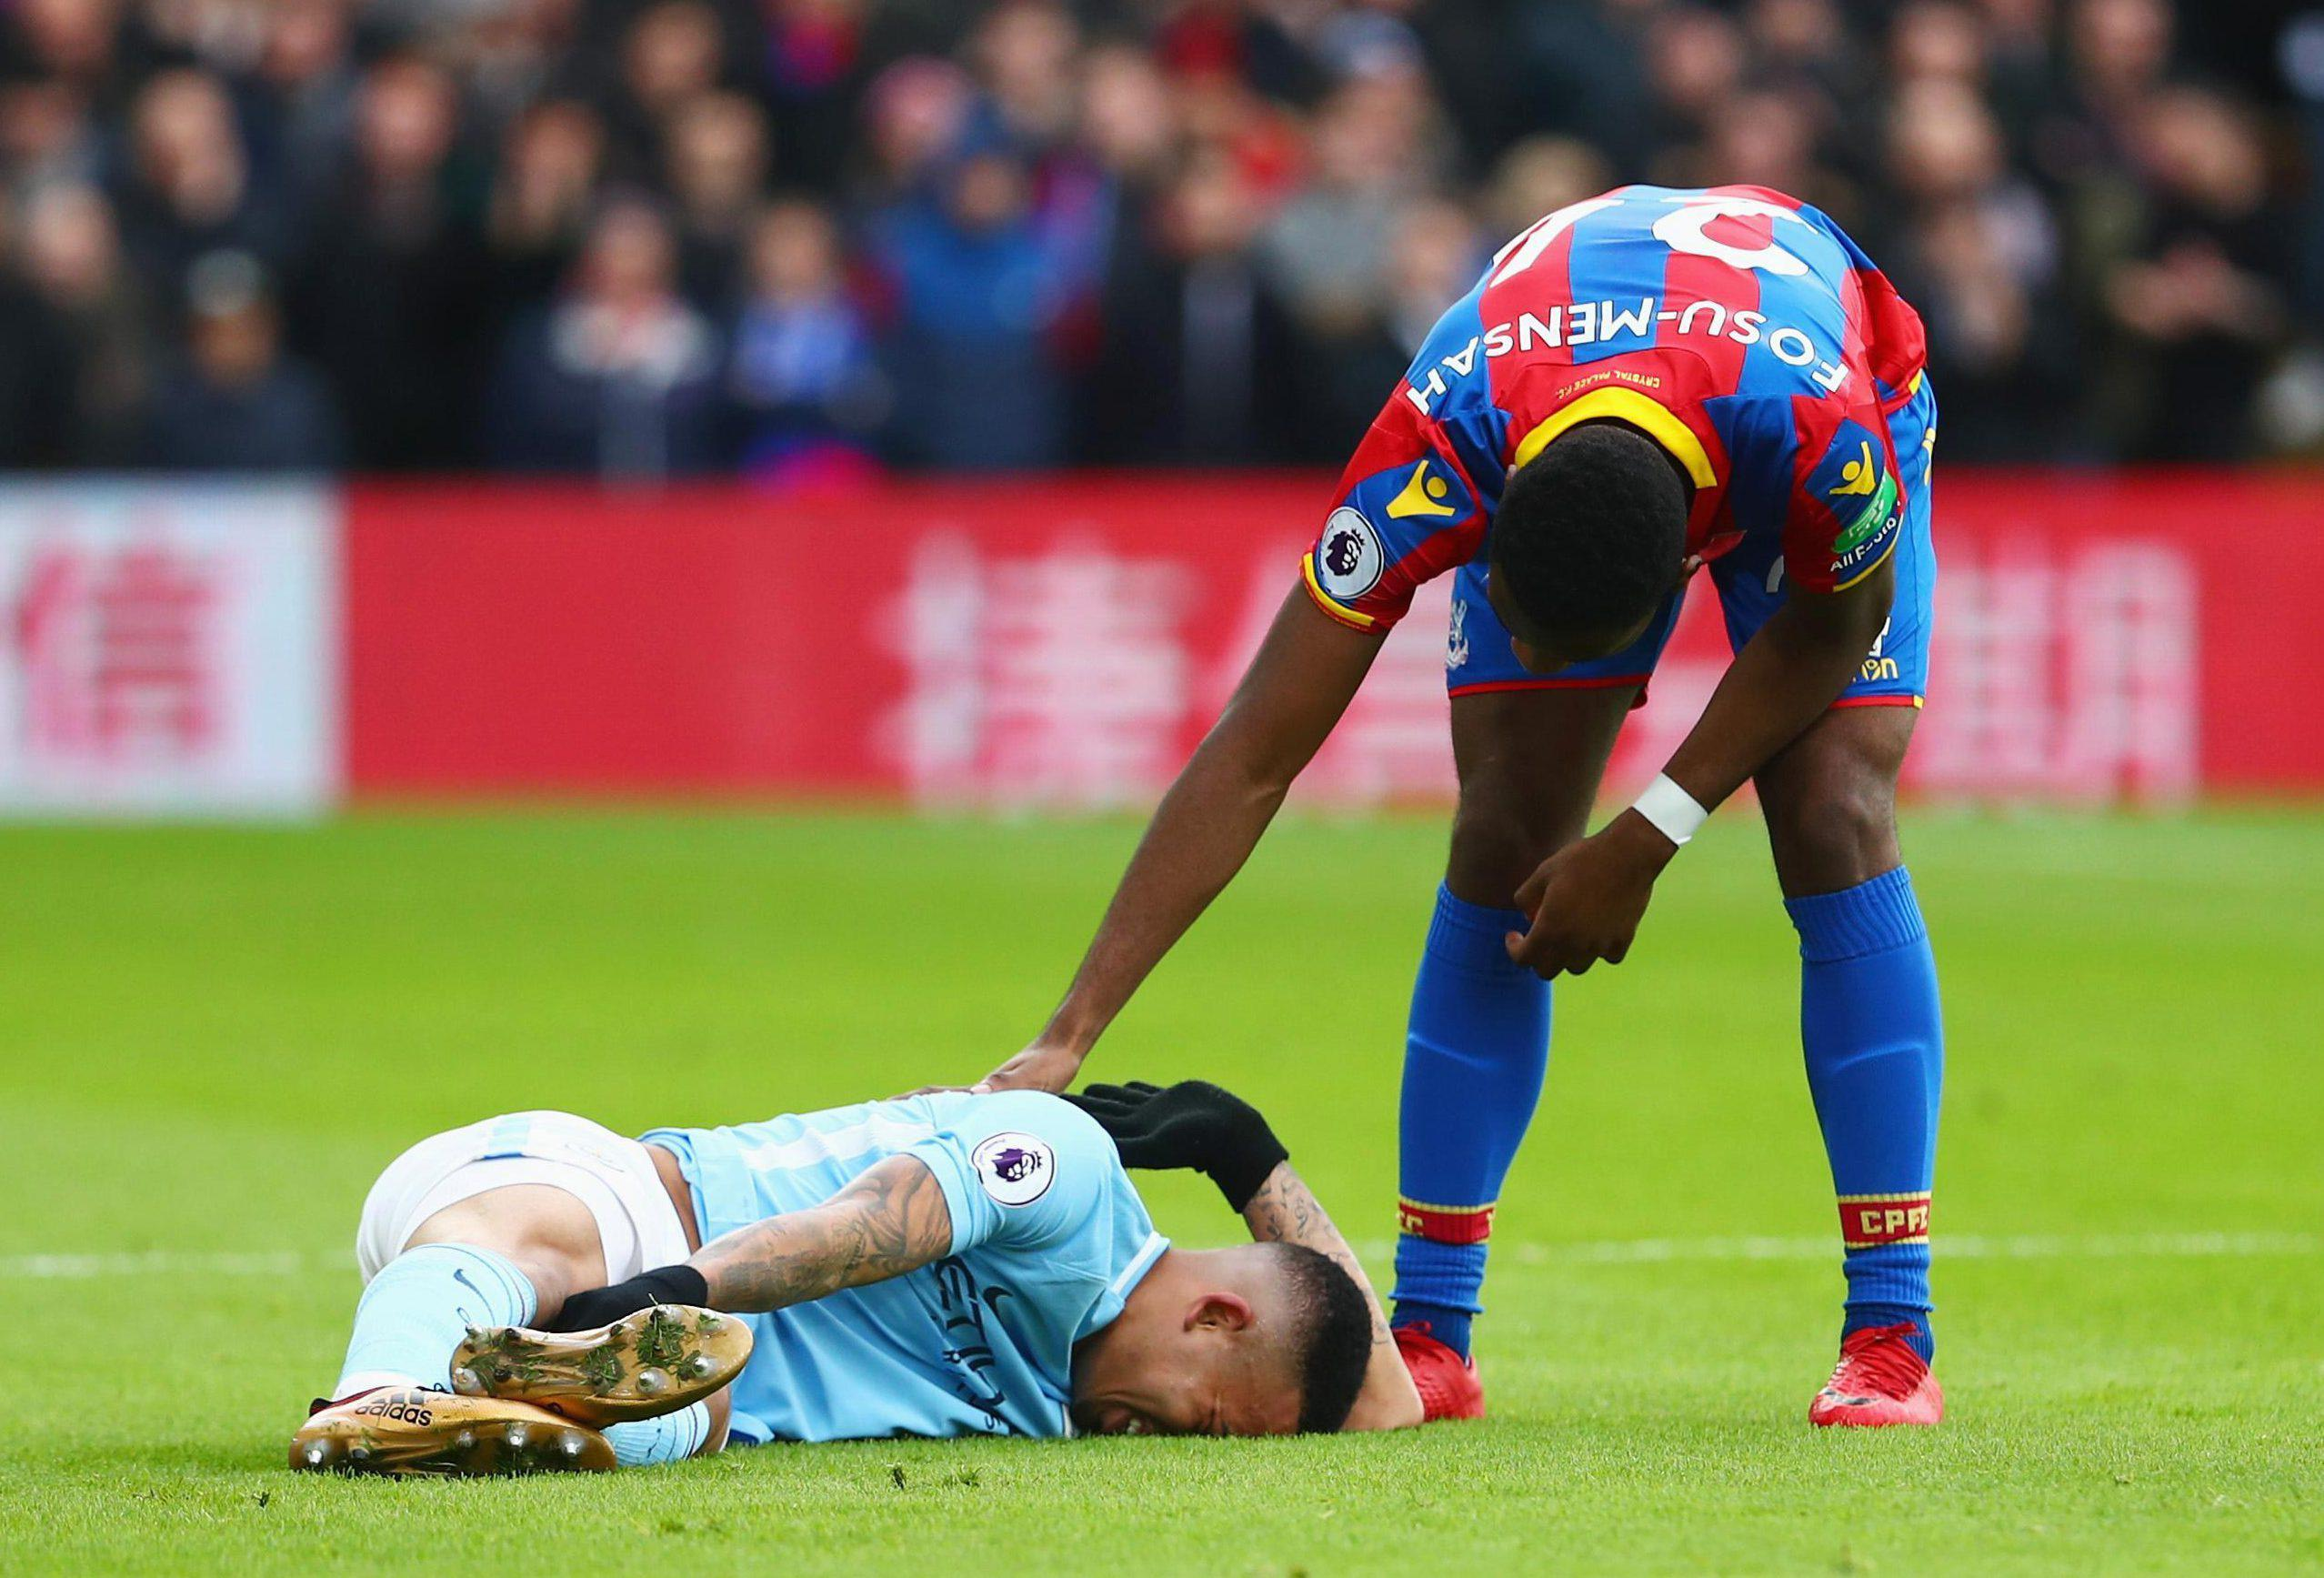 Crystal Palace ace Timothy Fosu-Mensah consoles Gabriel Jesus after injury